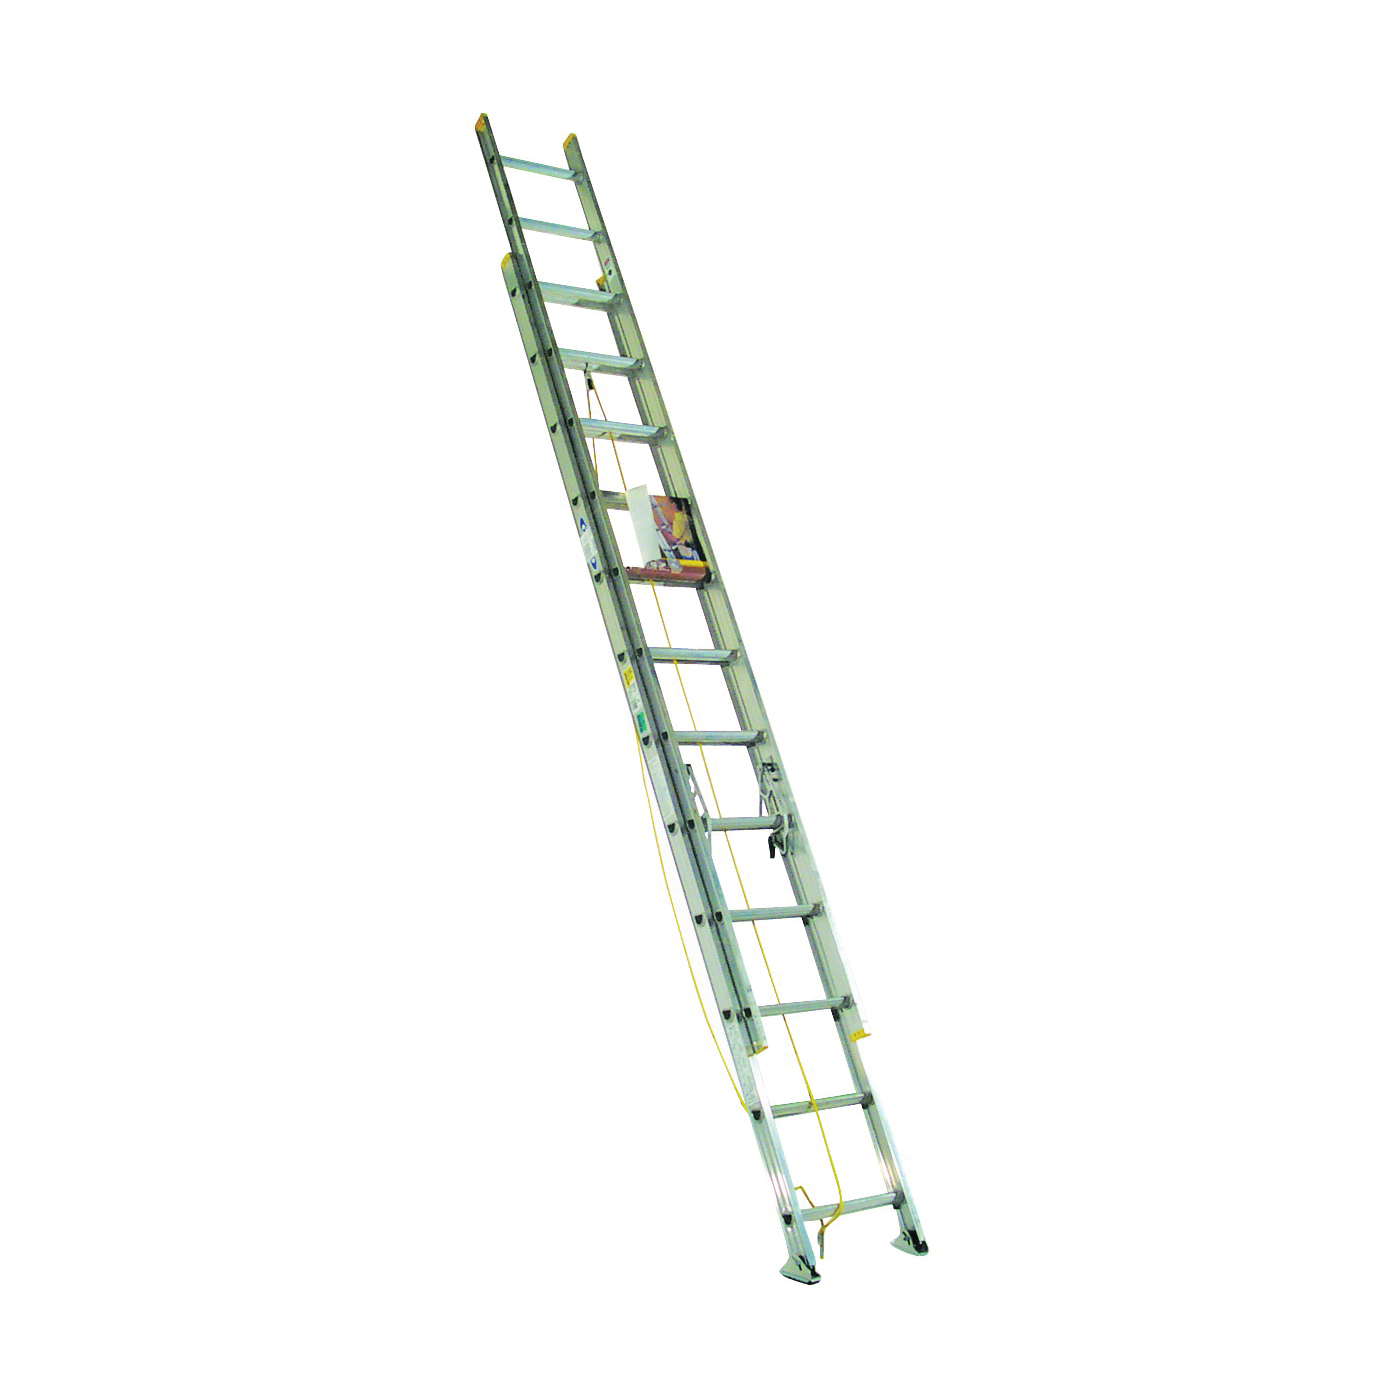 Picture of WERNER D1224-2 Extension Ladder, 23 ft H Reach, 225 lb, Aluminum